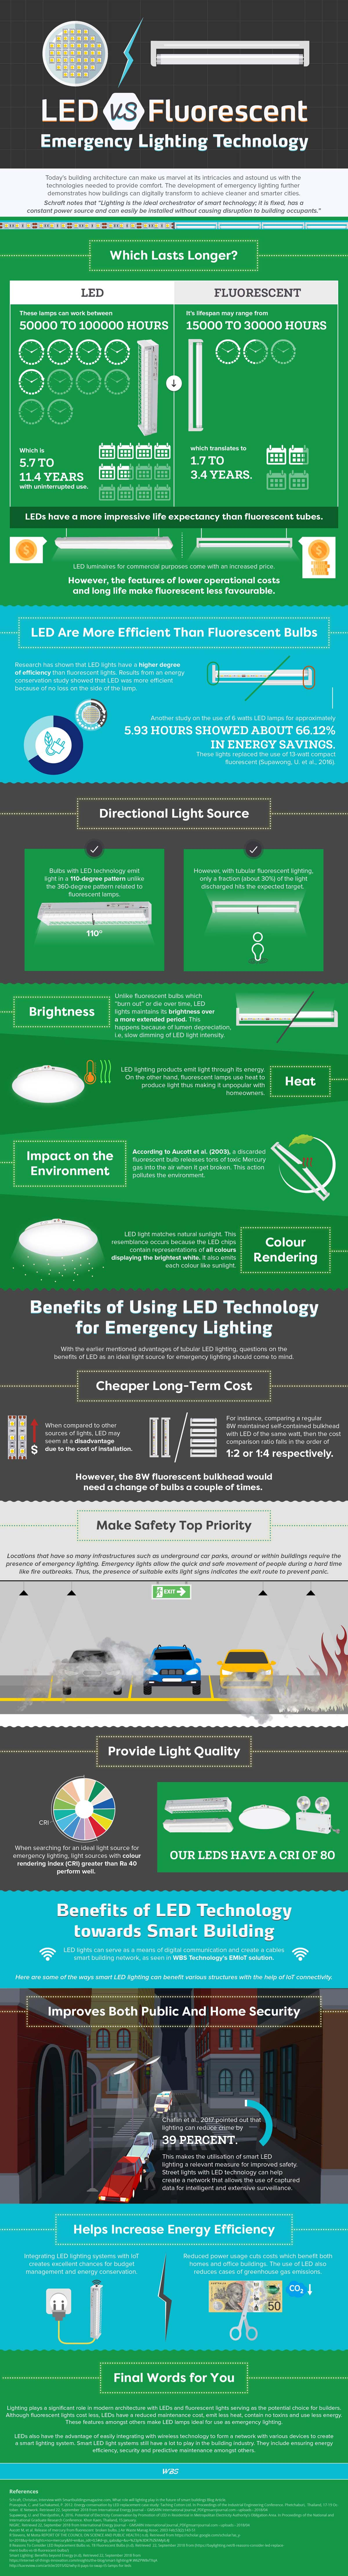 LED Vs Fluorescent Emergency Lighting Technology